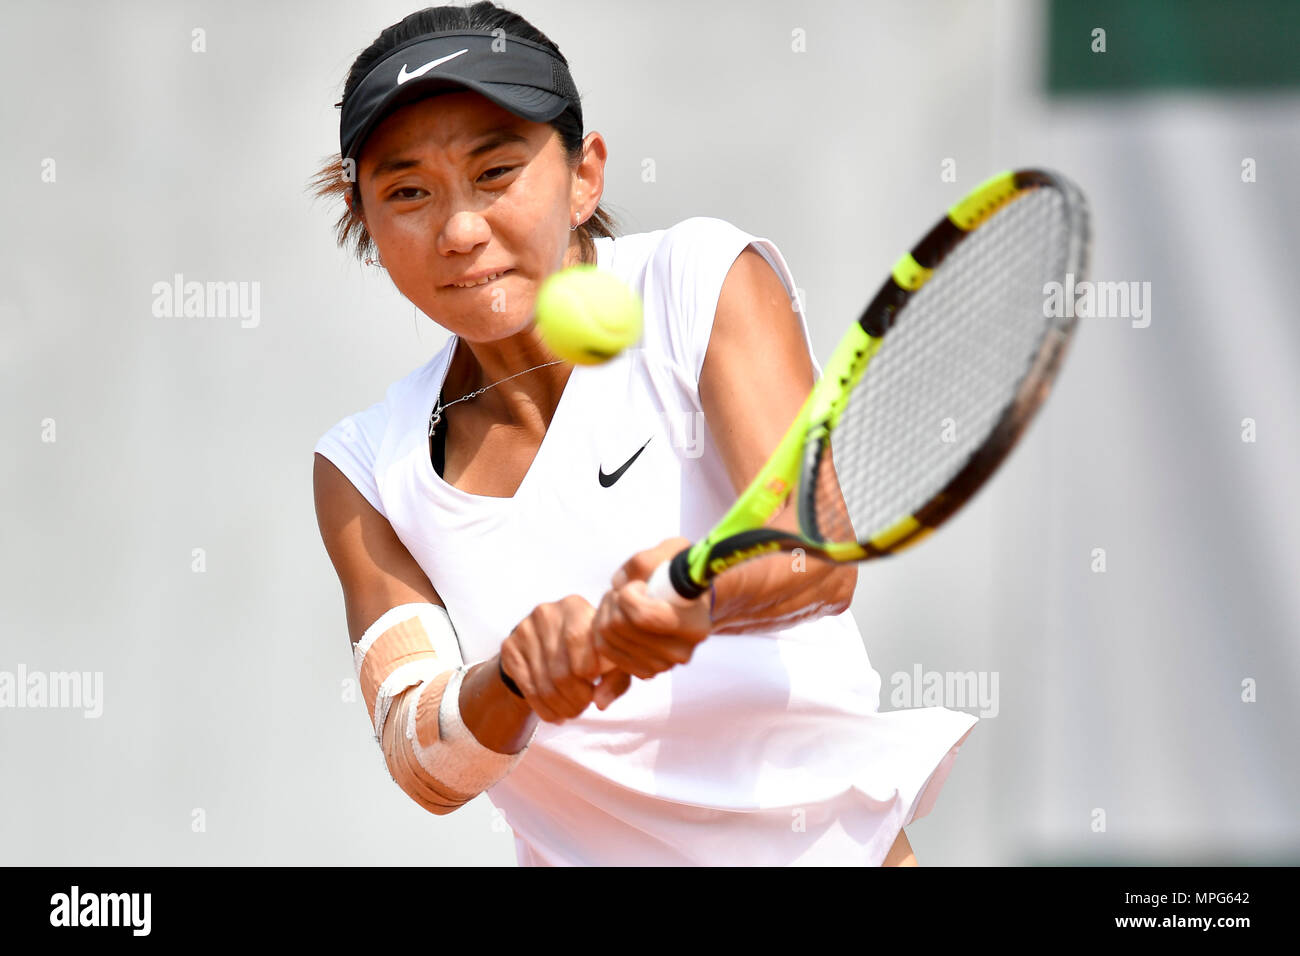 Paris. 23rd May, 2018. Lu Jiajing of China returns the ball to Margot Yerolymos of France during the women's singles Qualification 1st round match of French Open in Paris, France on May 23, 2018. Lu lost 0-2. Credit: Chen Yichen/Xinhua/Alamy Live News Stock Photo